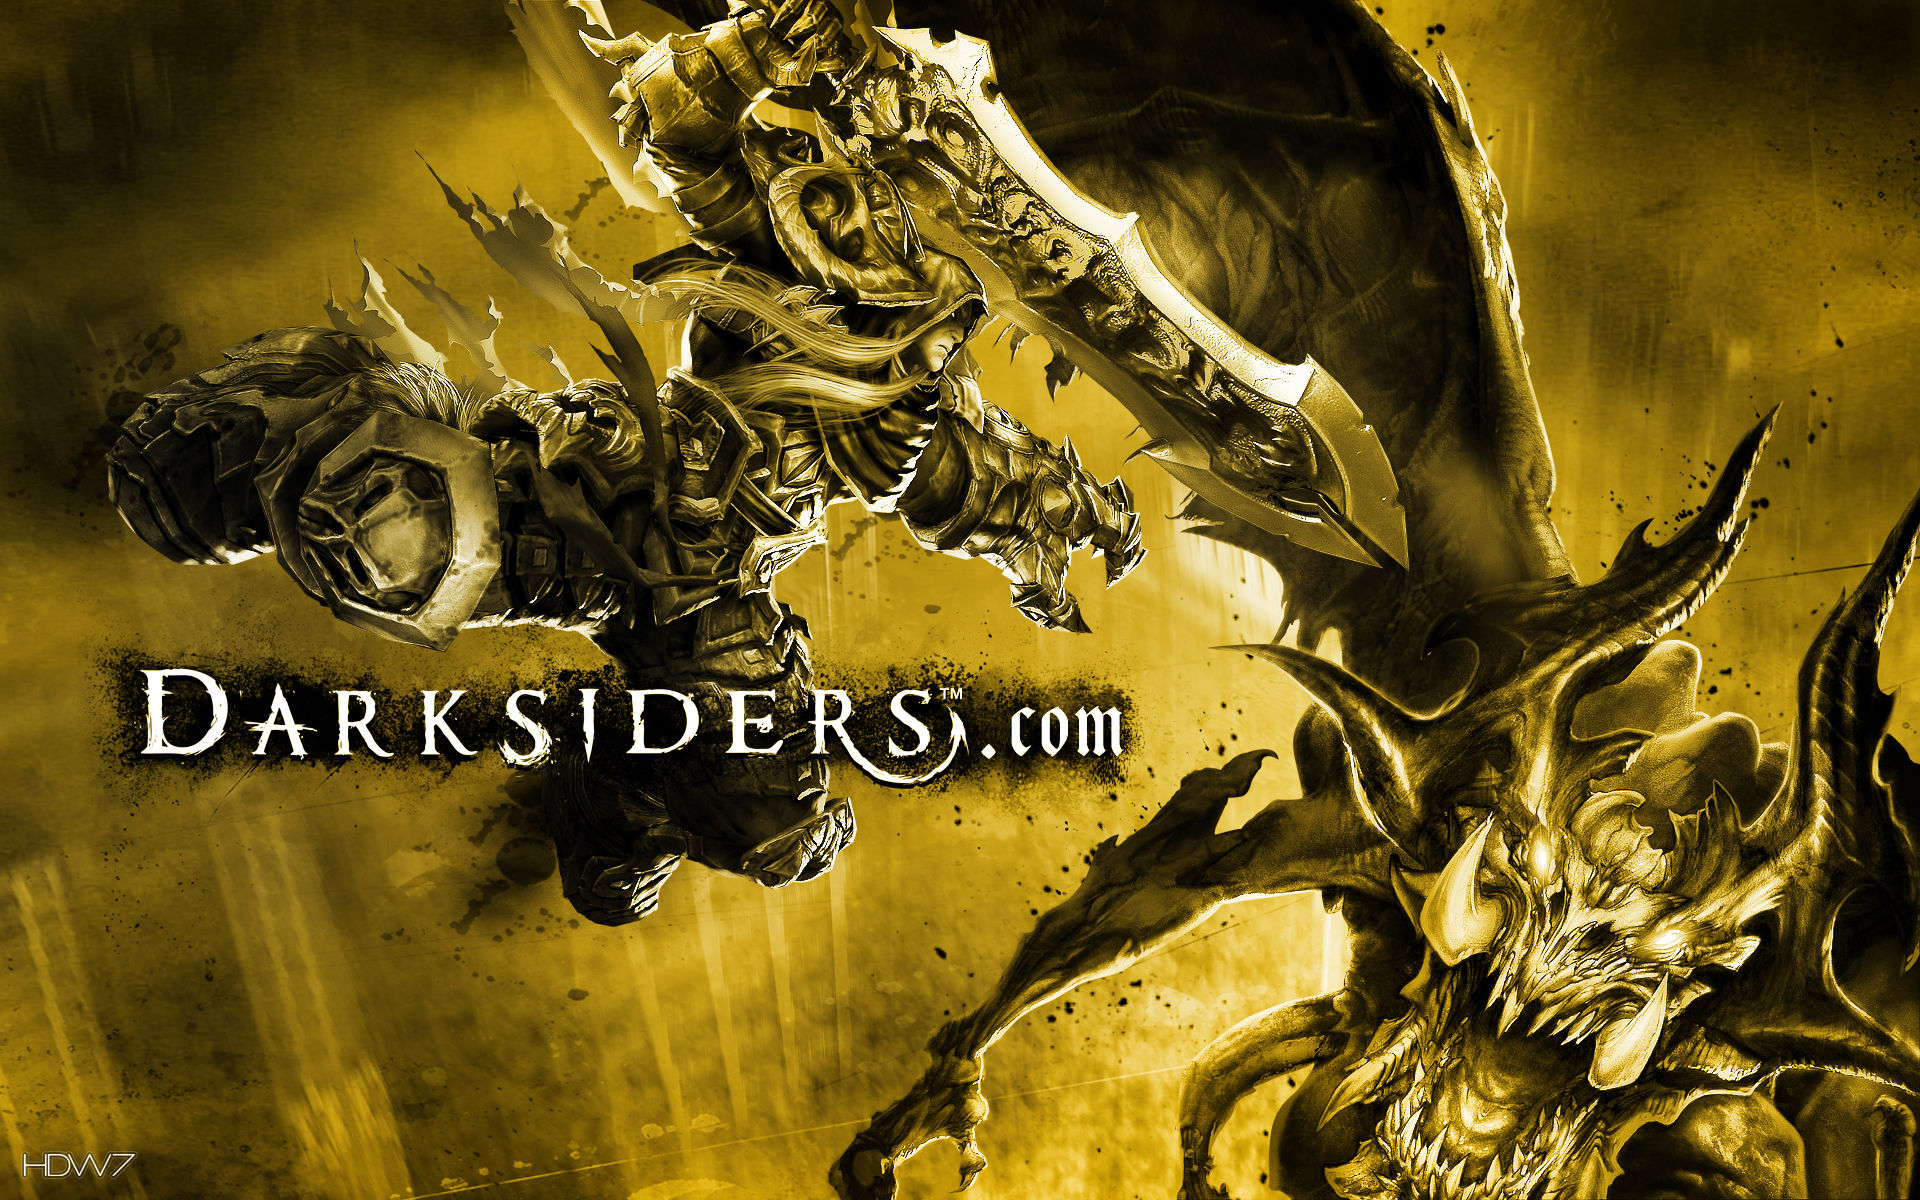 darksiders wrath of war shocking moment widescreen wallpaper